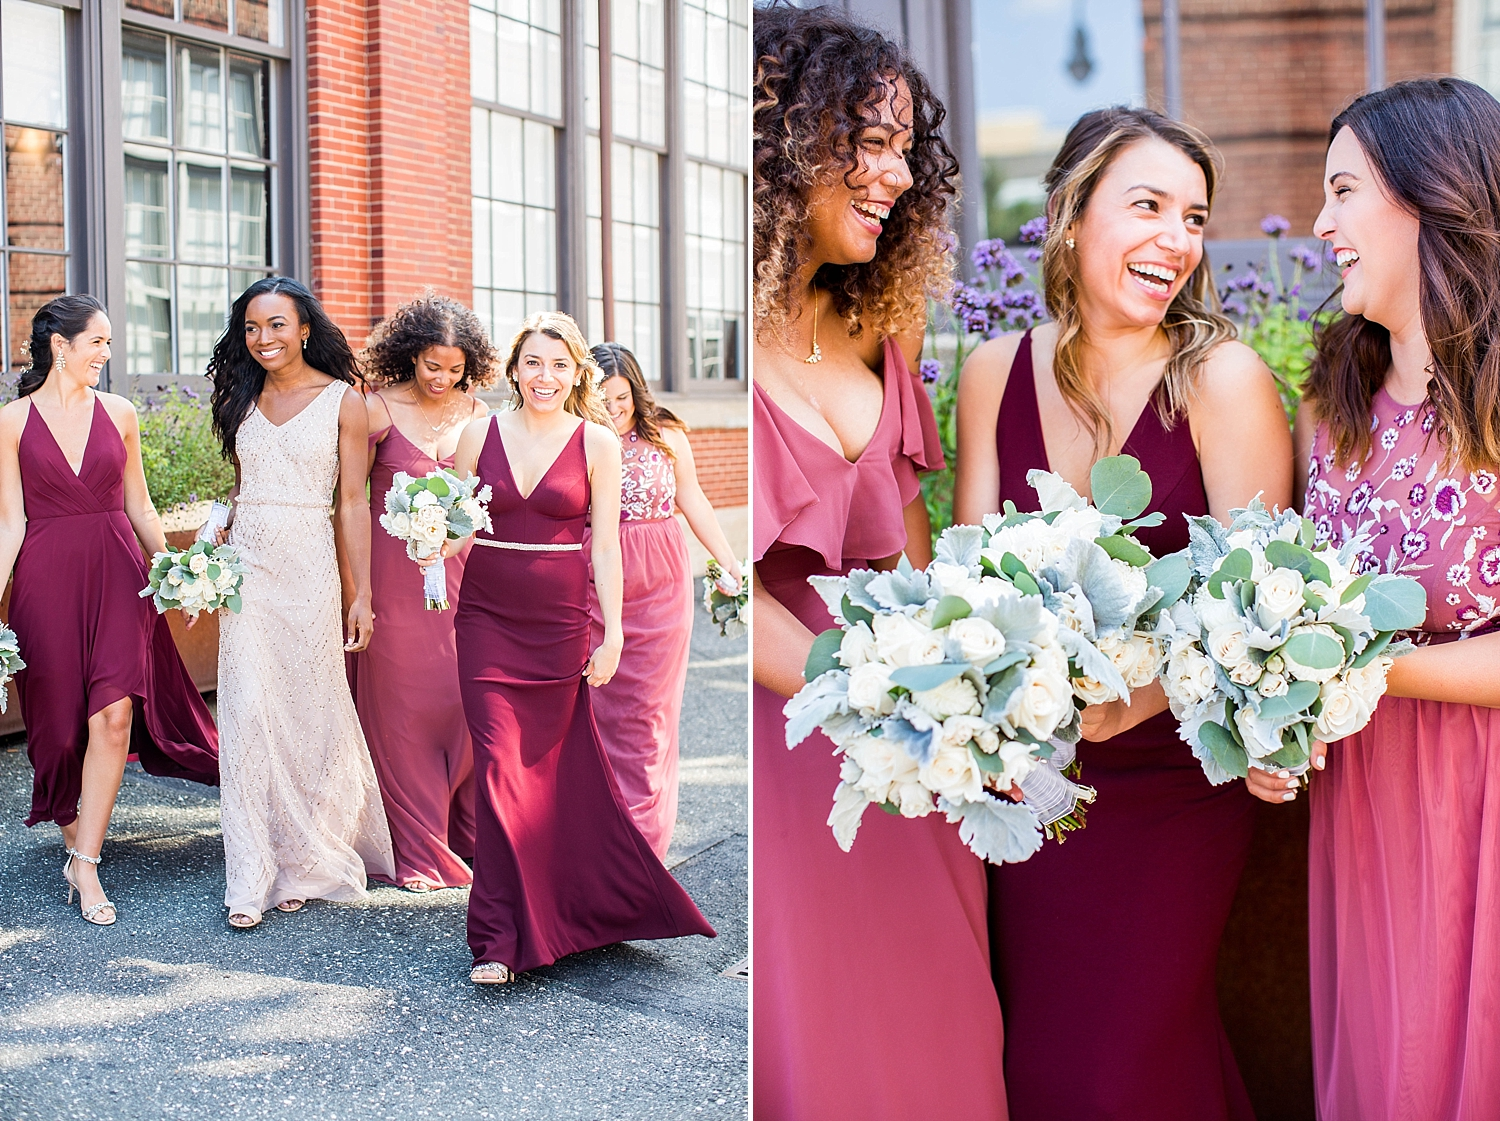 BHLDN Bridesmaids Dresses Campaign Philadelphia New Jersey Wedding Fashion Photography by Kelee Bovelle_0010.jpg